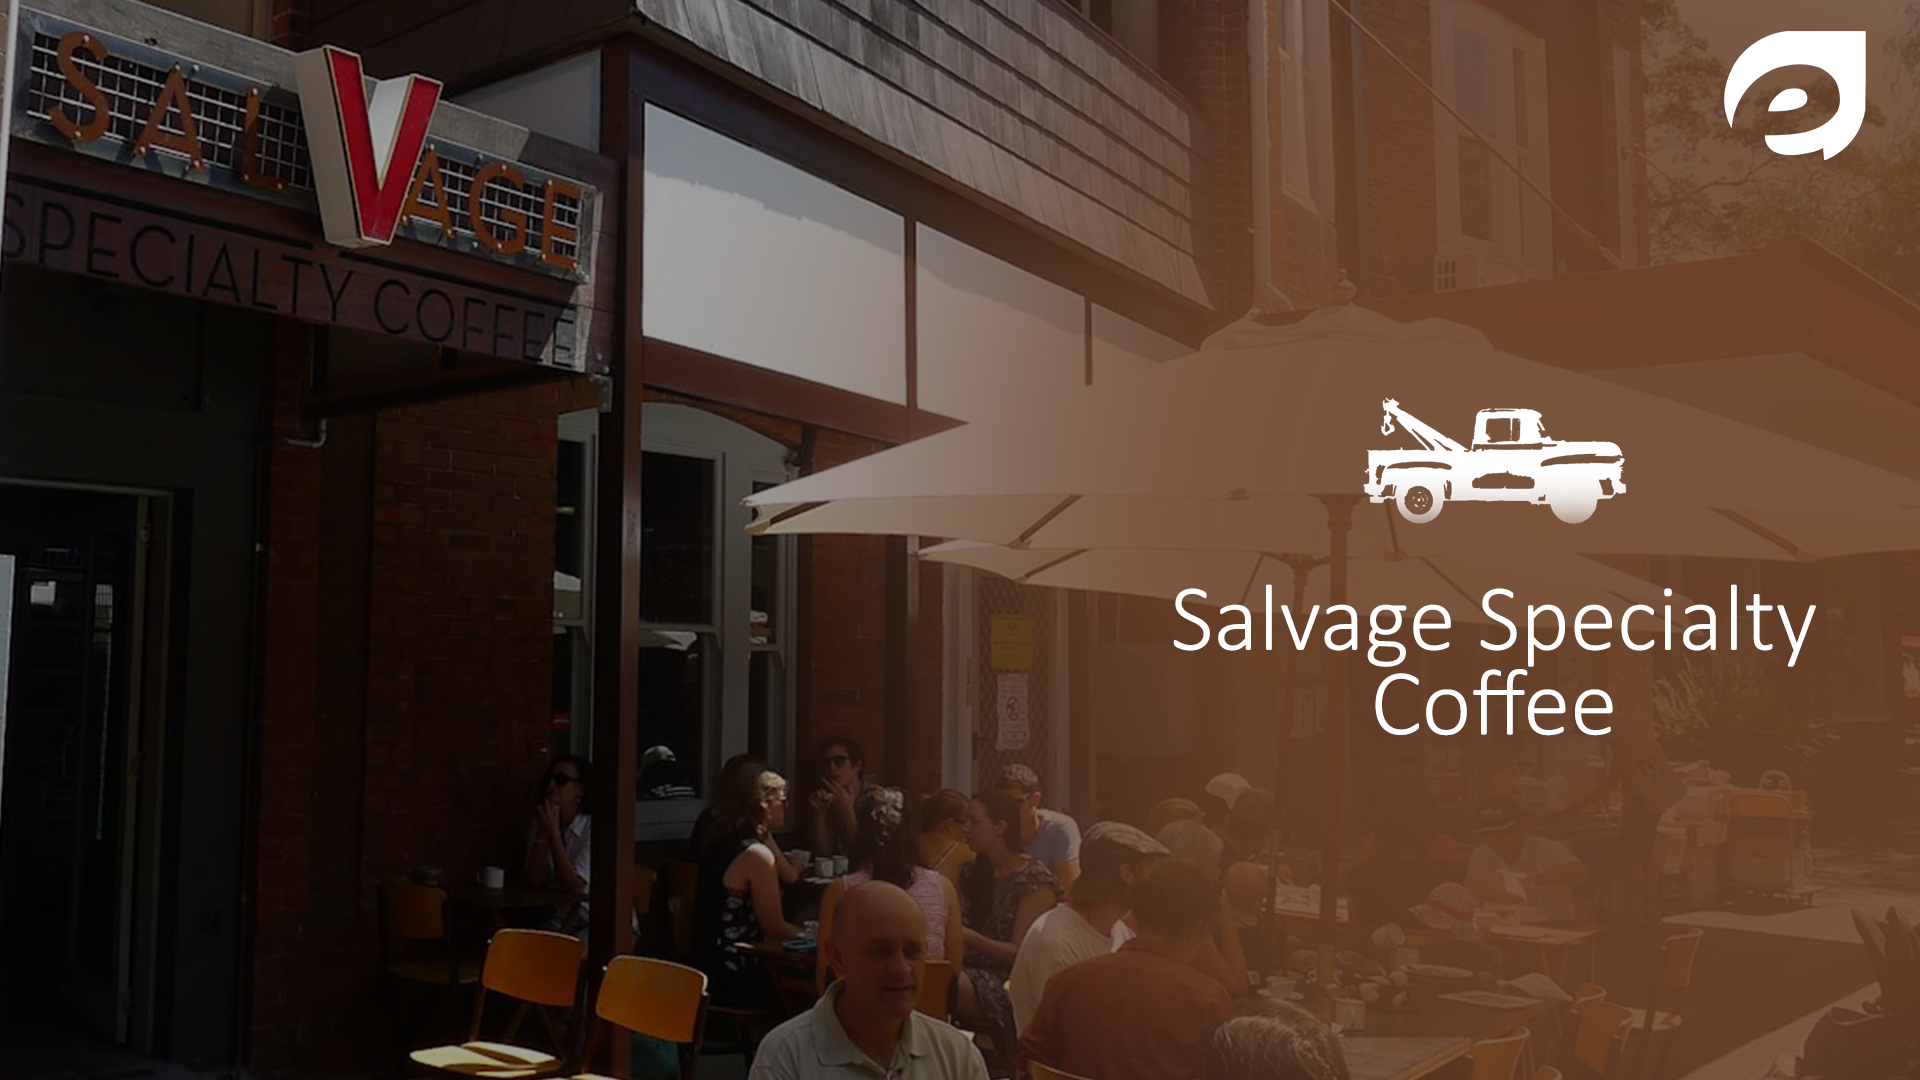 Best Coffee Cafes in Sydney- Salvage specialty coffee